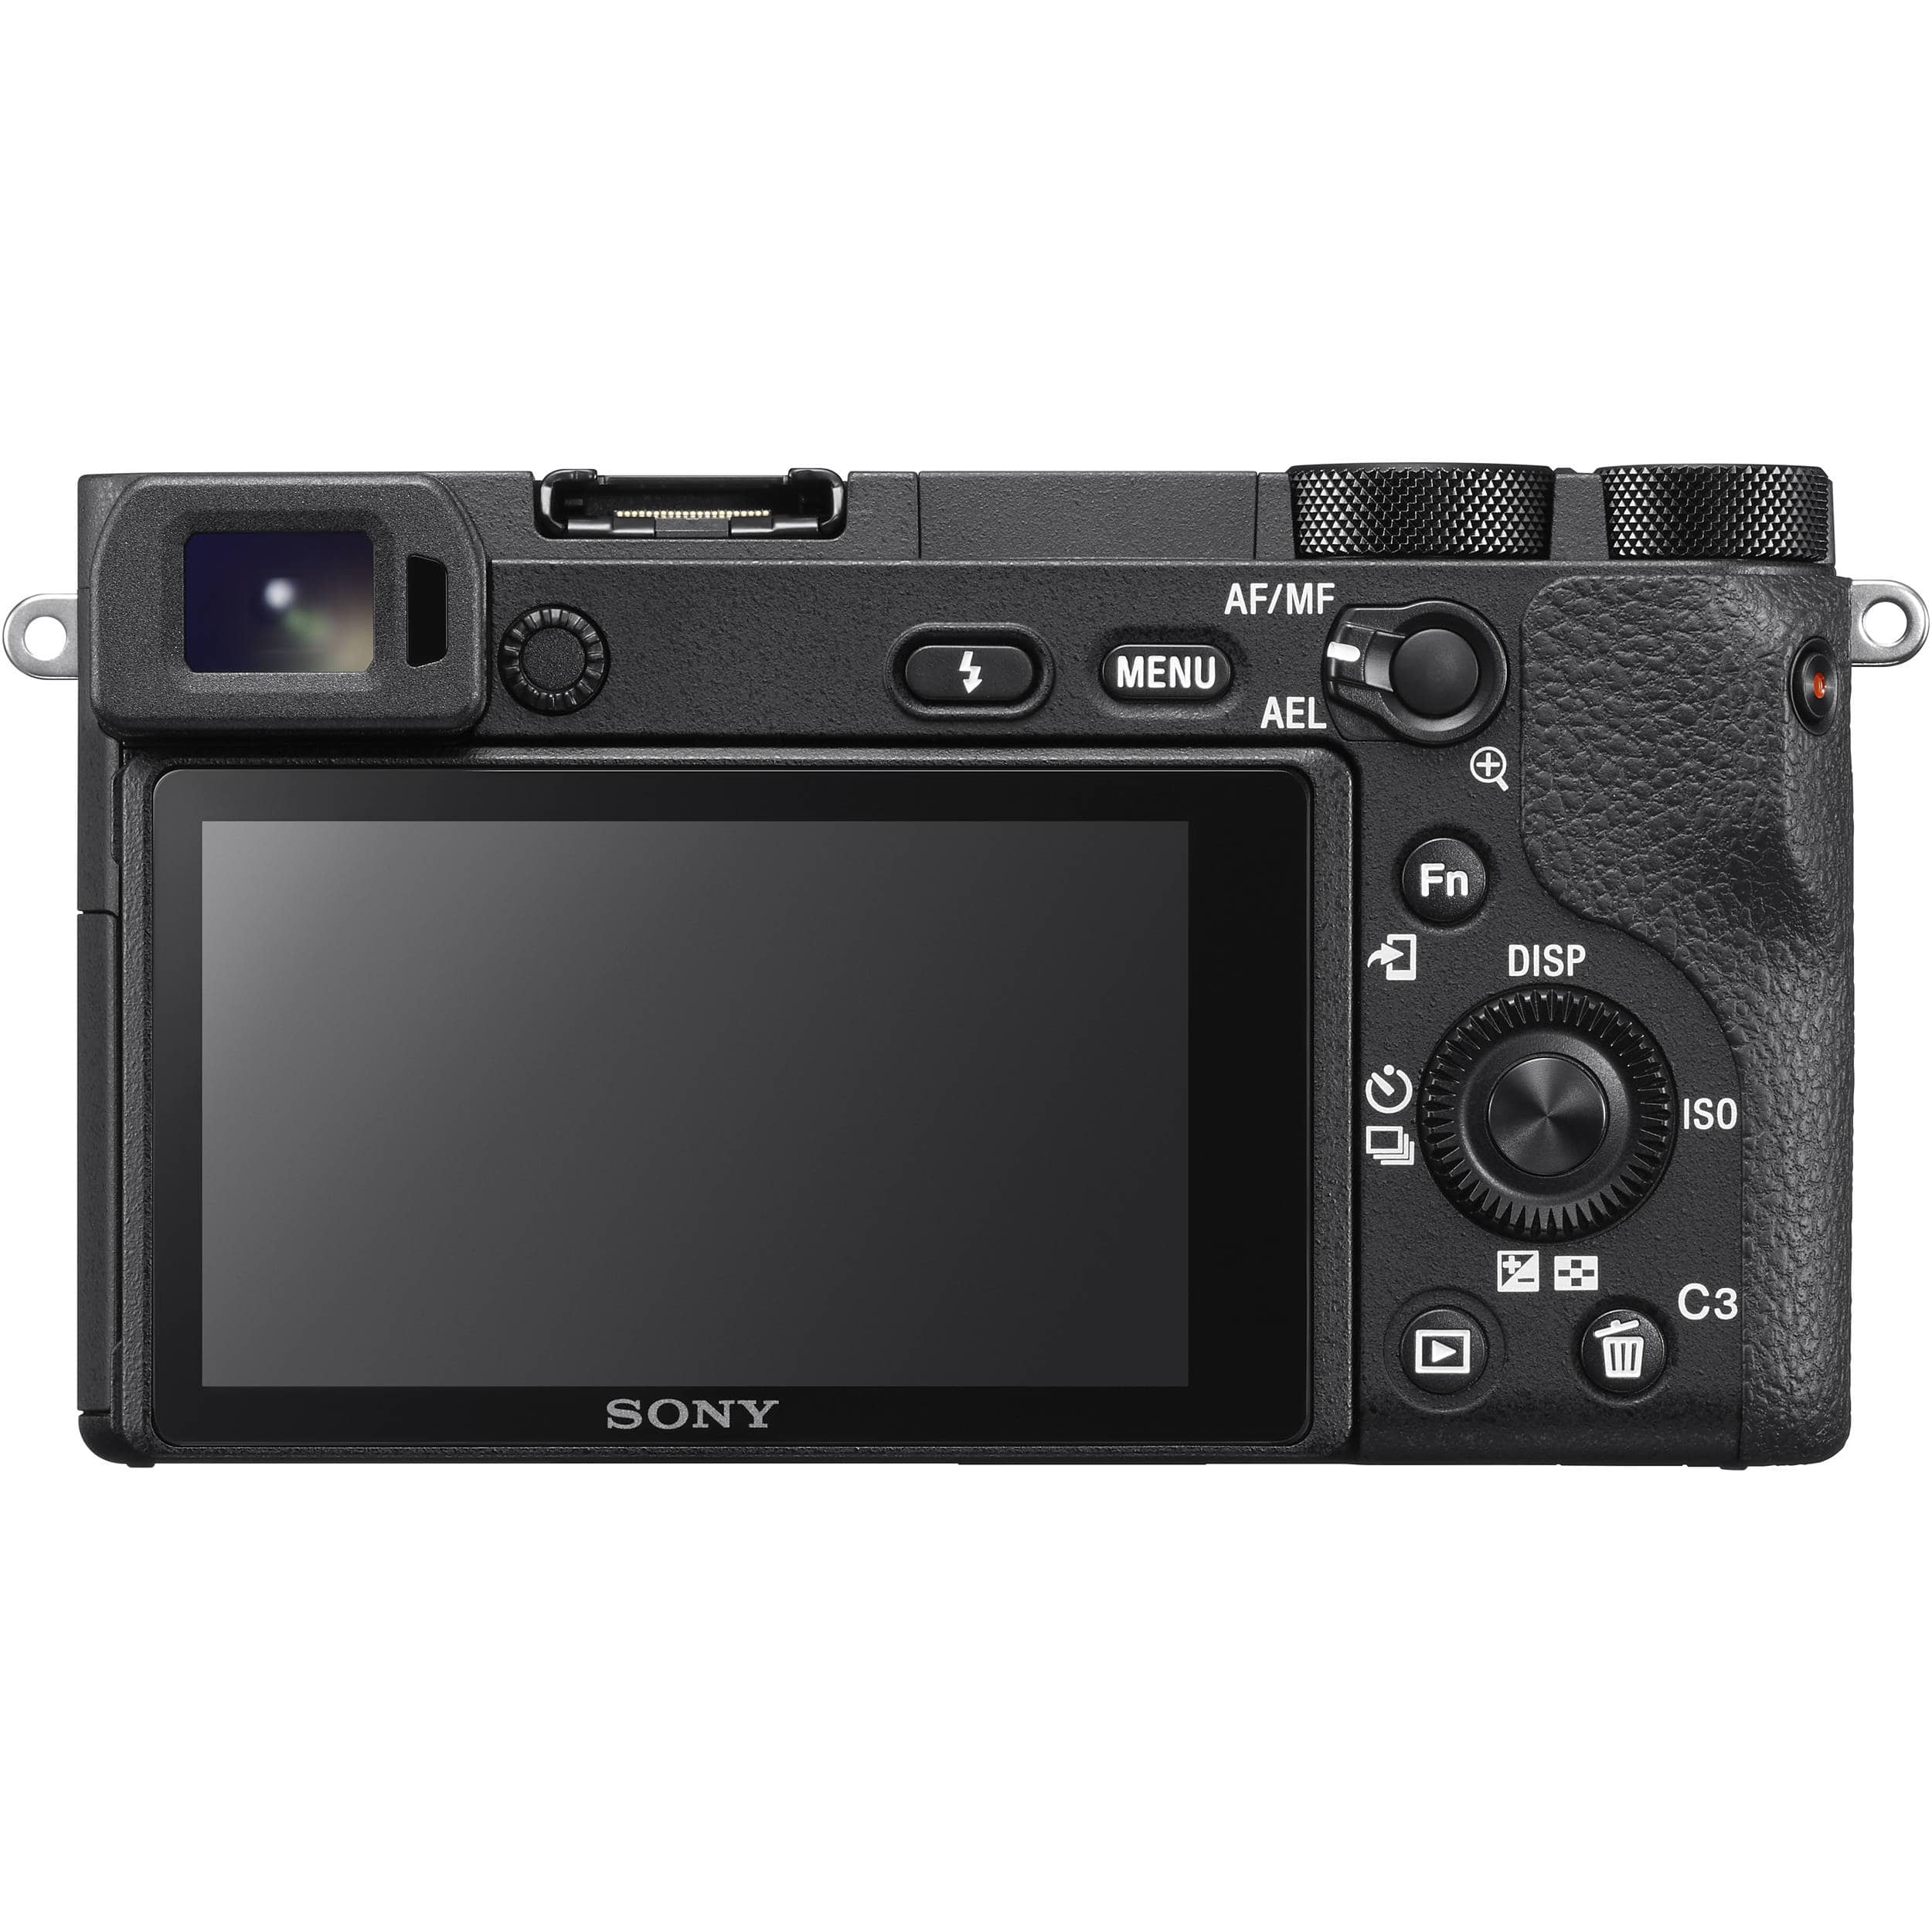 BHphotovideo - Sony A6500 camera for $1398 FS and no Tax. w/ FREE $200 gift card and 64GB SD card.